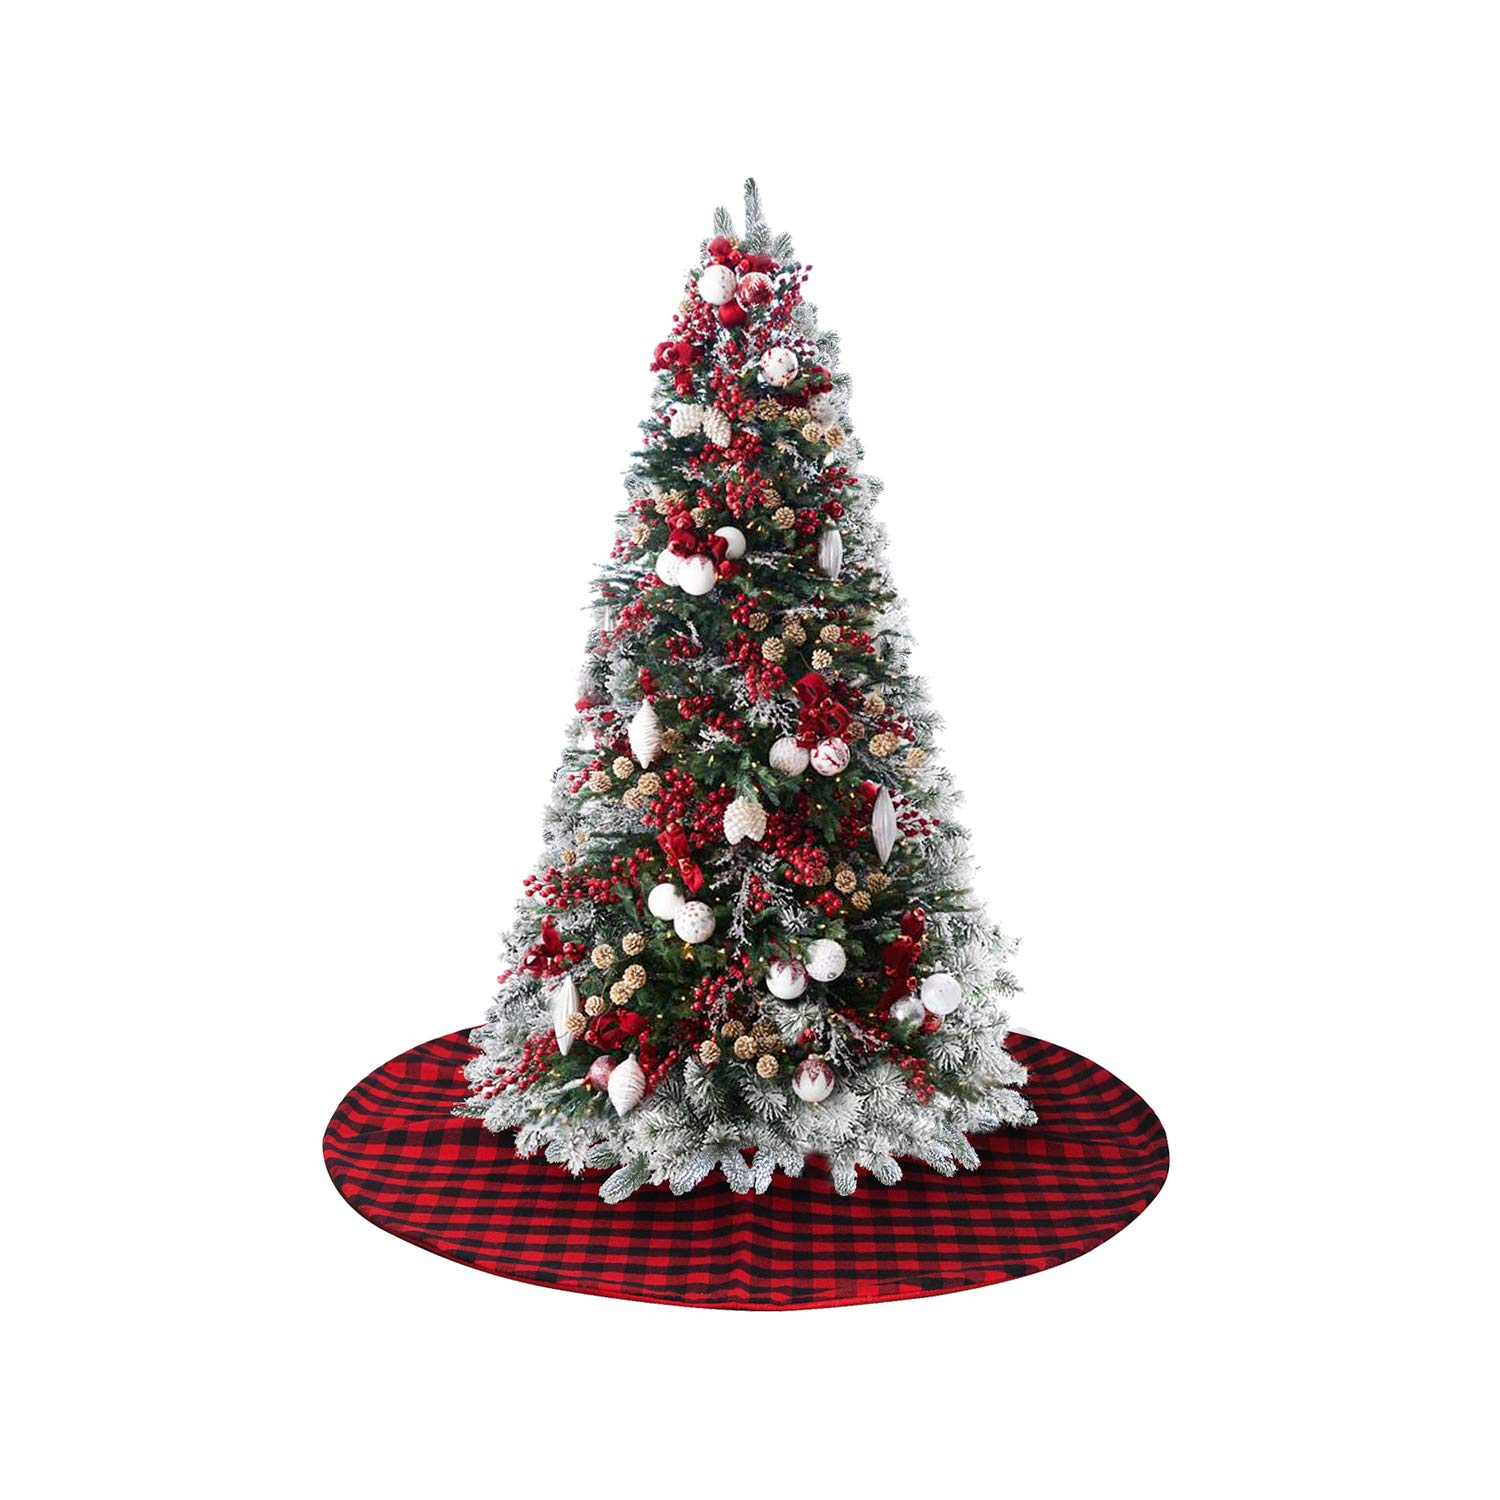 EDLDECCO Small Version in 36 inch Plaid Christmas Tree Skirt Red